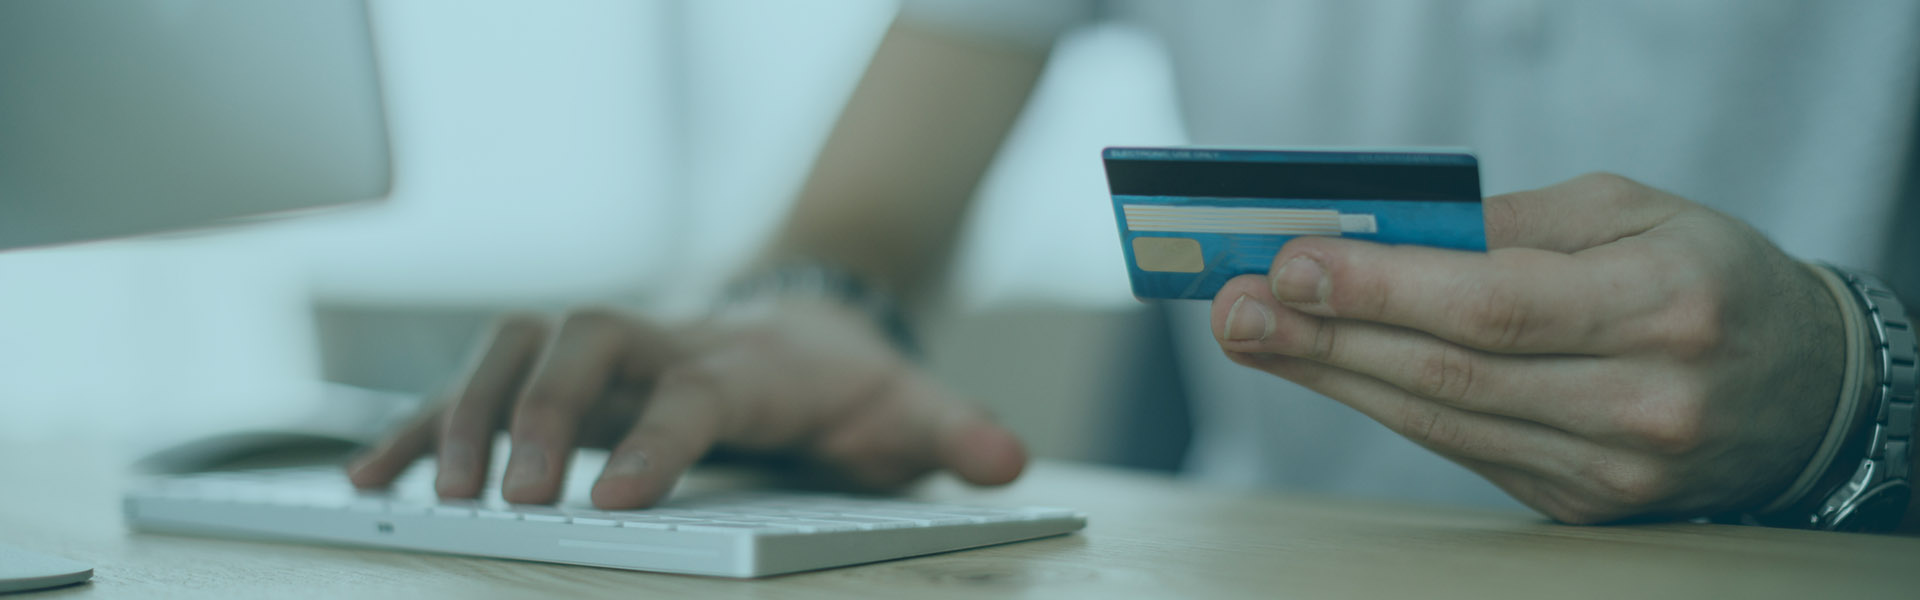 Man on Computer holding Debit Card